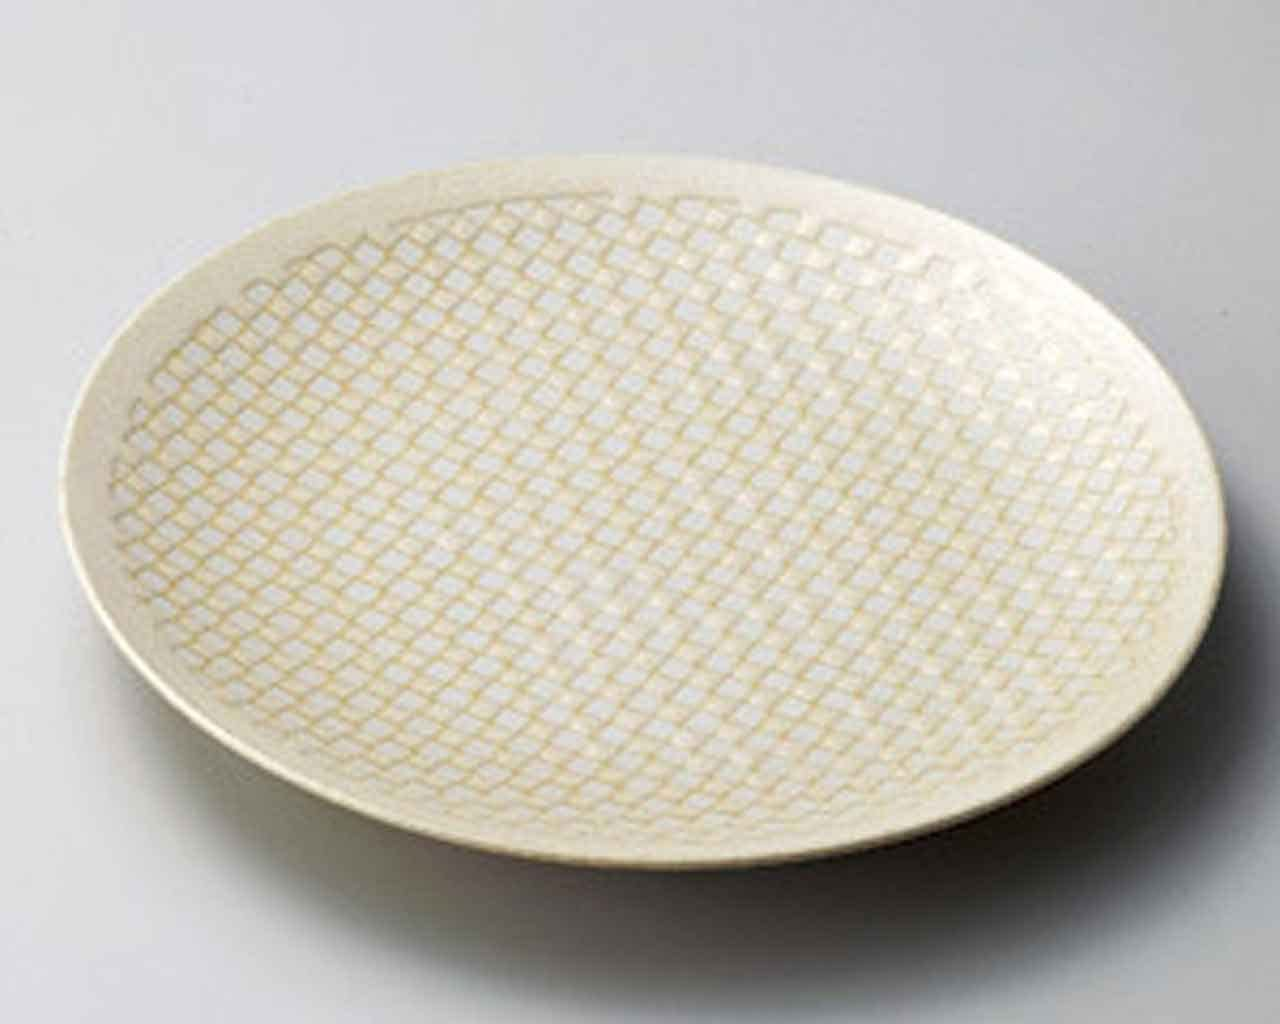 Square Genuine Free Shipping Cream New Free Shipping 11.2inch Set of 5 SUSHI Made PLATES Beige porcelain